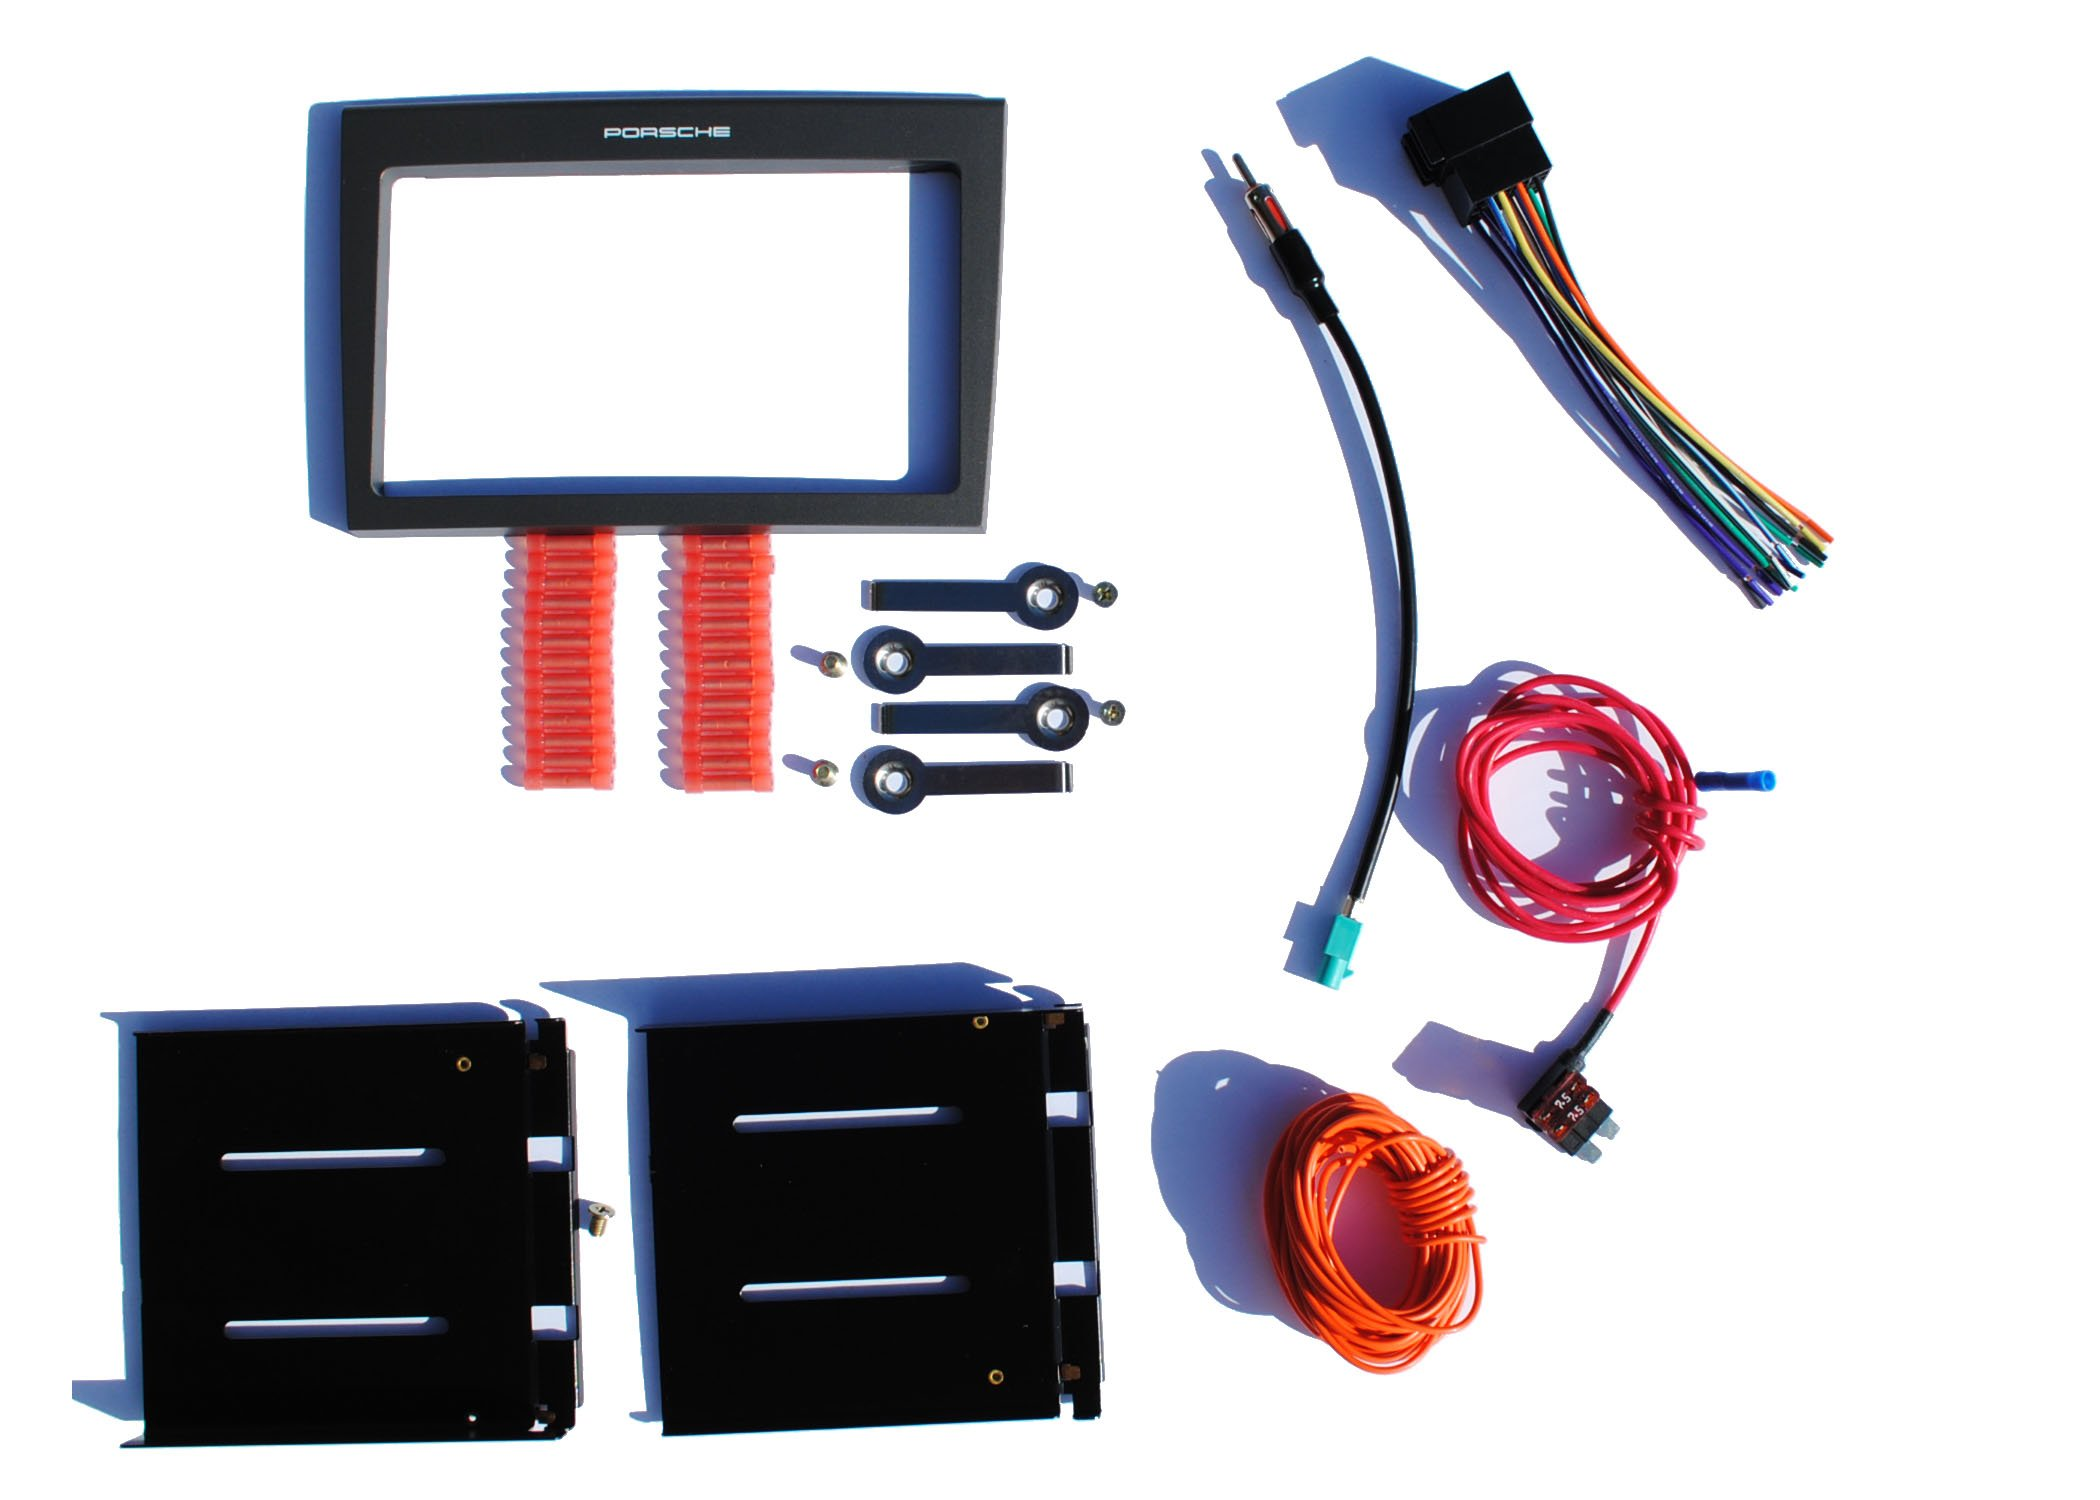 Aftermarket Double Din Radio Stereo Installation Dash Kit Fitted For 2005-2008 Porsche Select 997/987 Models w/ Standard Audio System / Sound Package